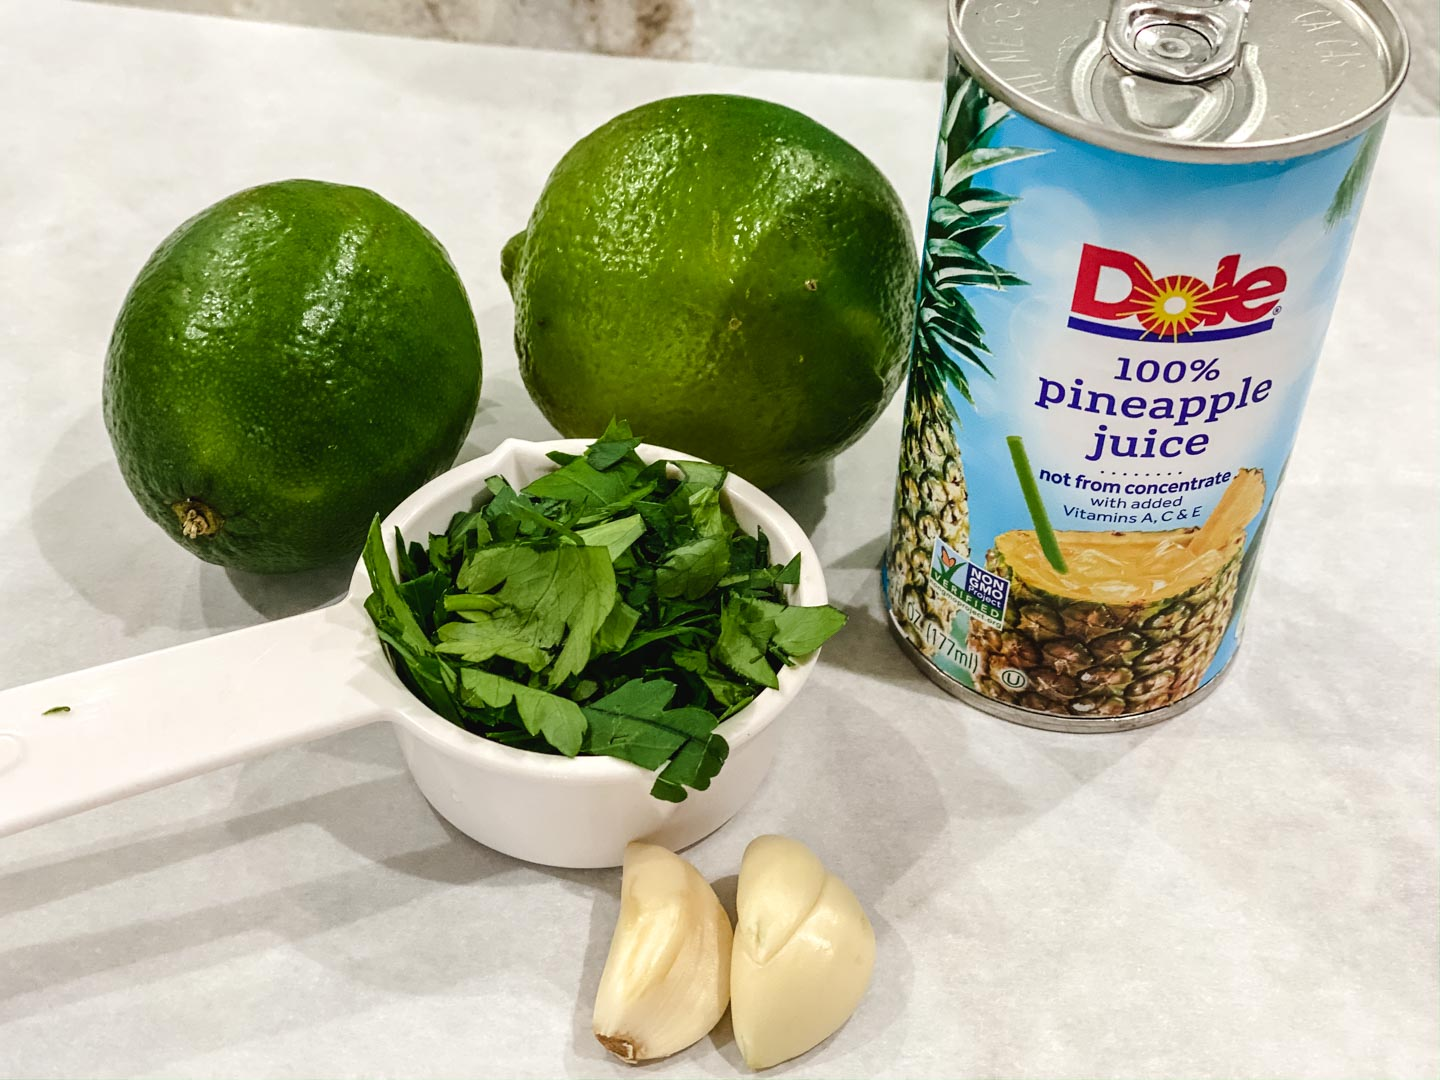 Limes, parsley, pineapple juice and garlic on parchment paper.